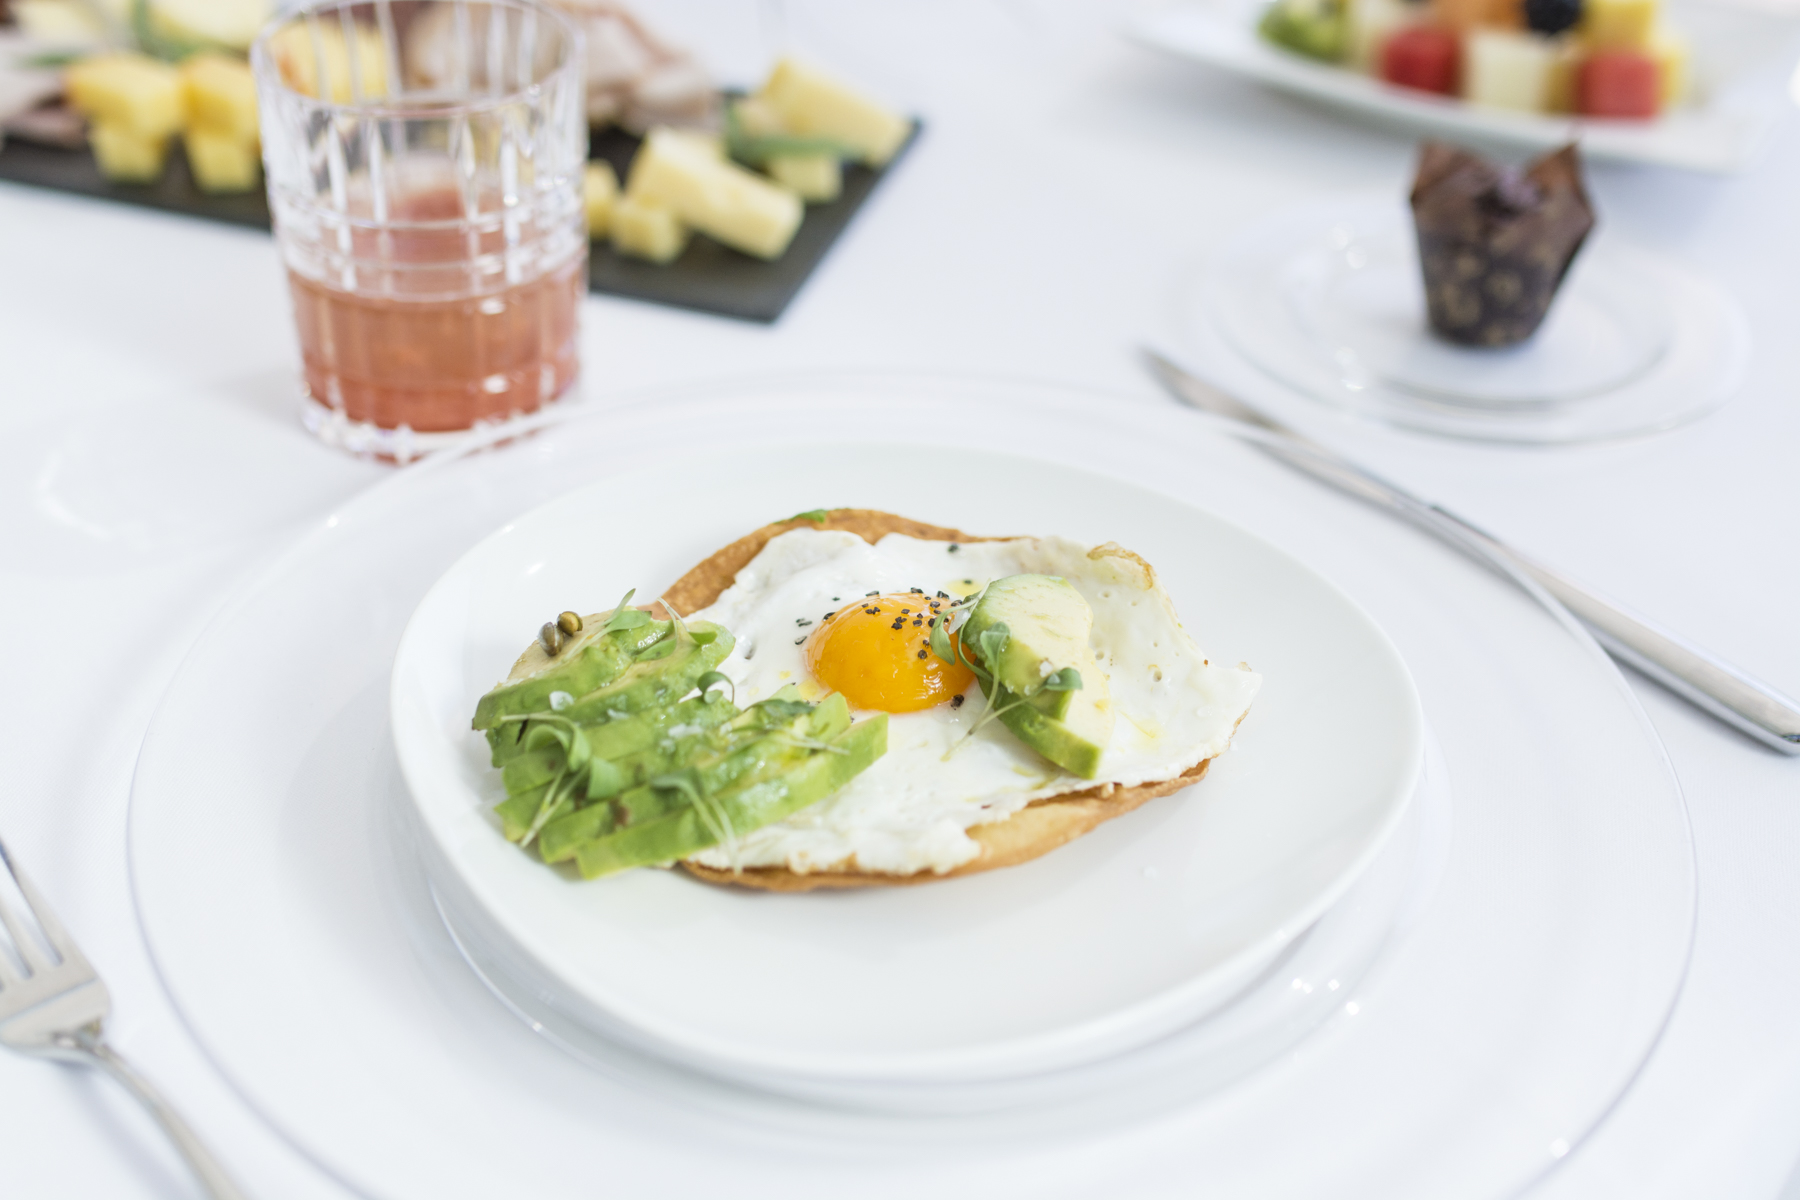 Corn tortilla with fried egg and avocado